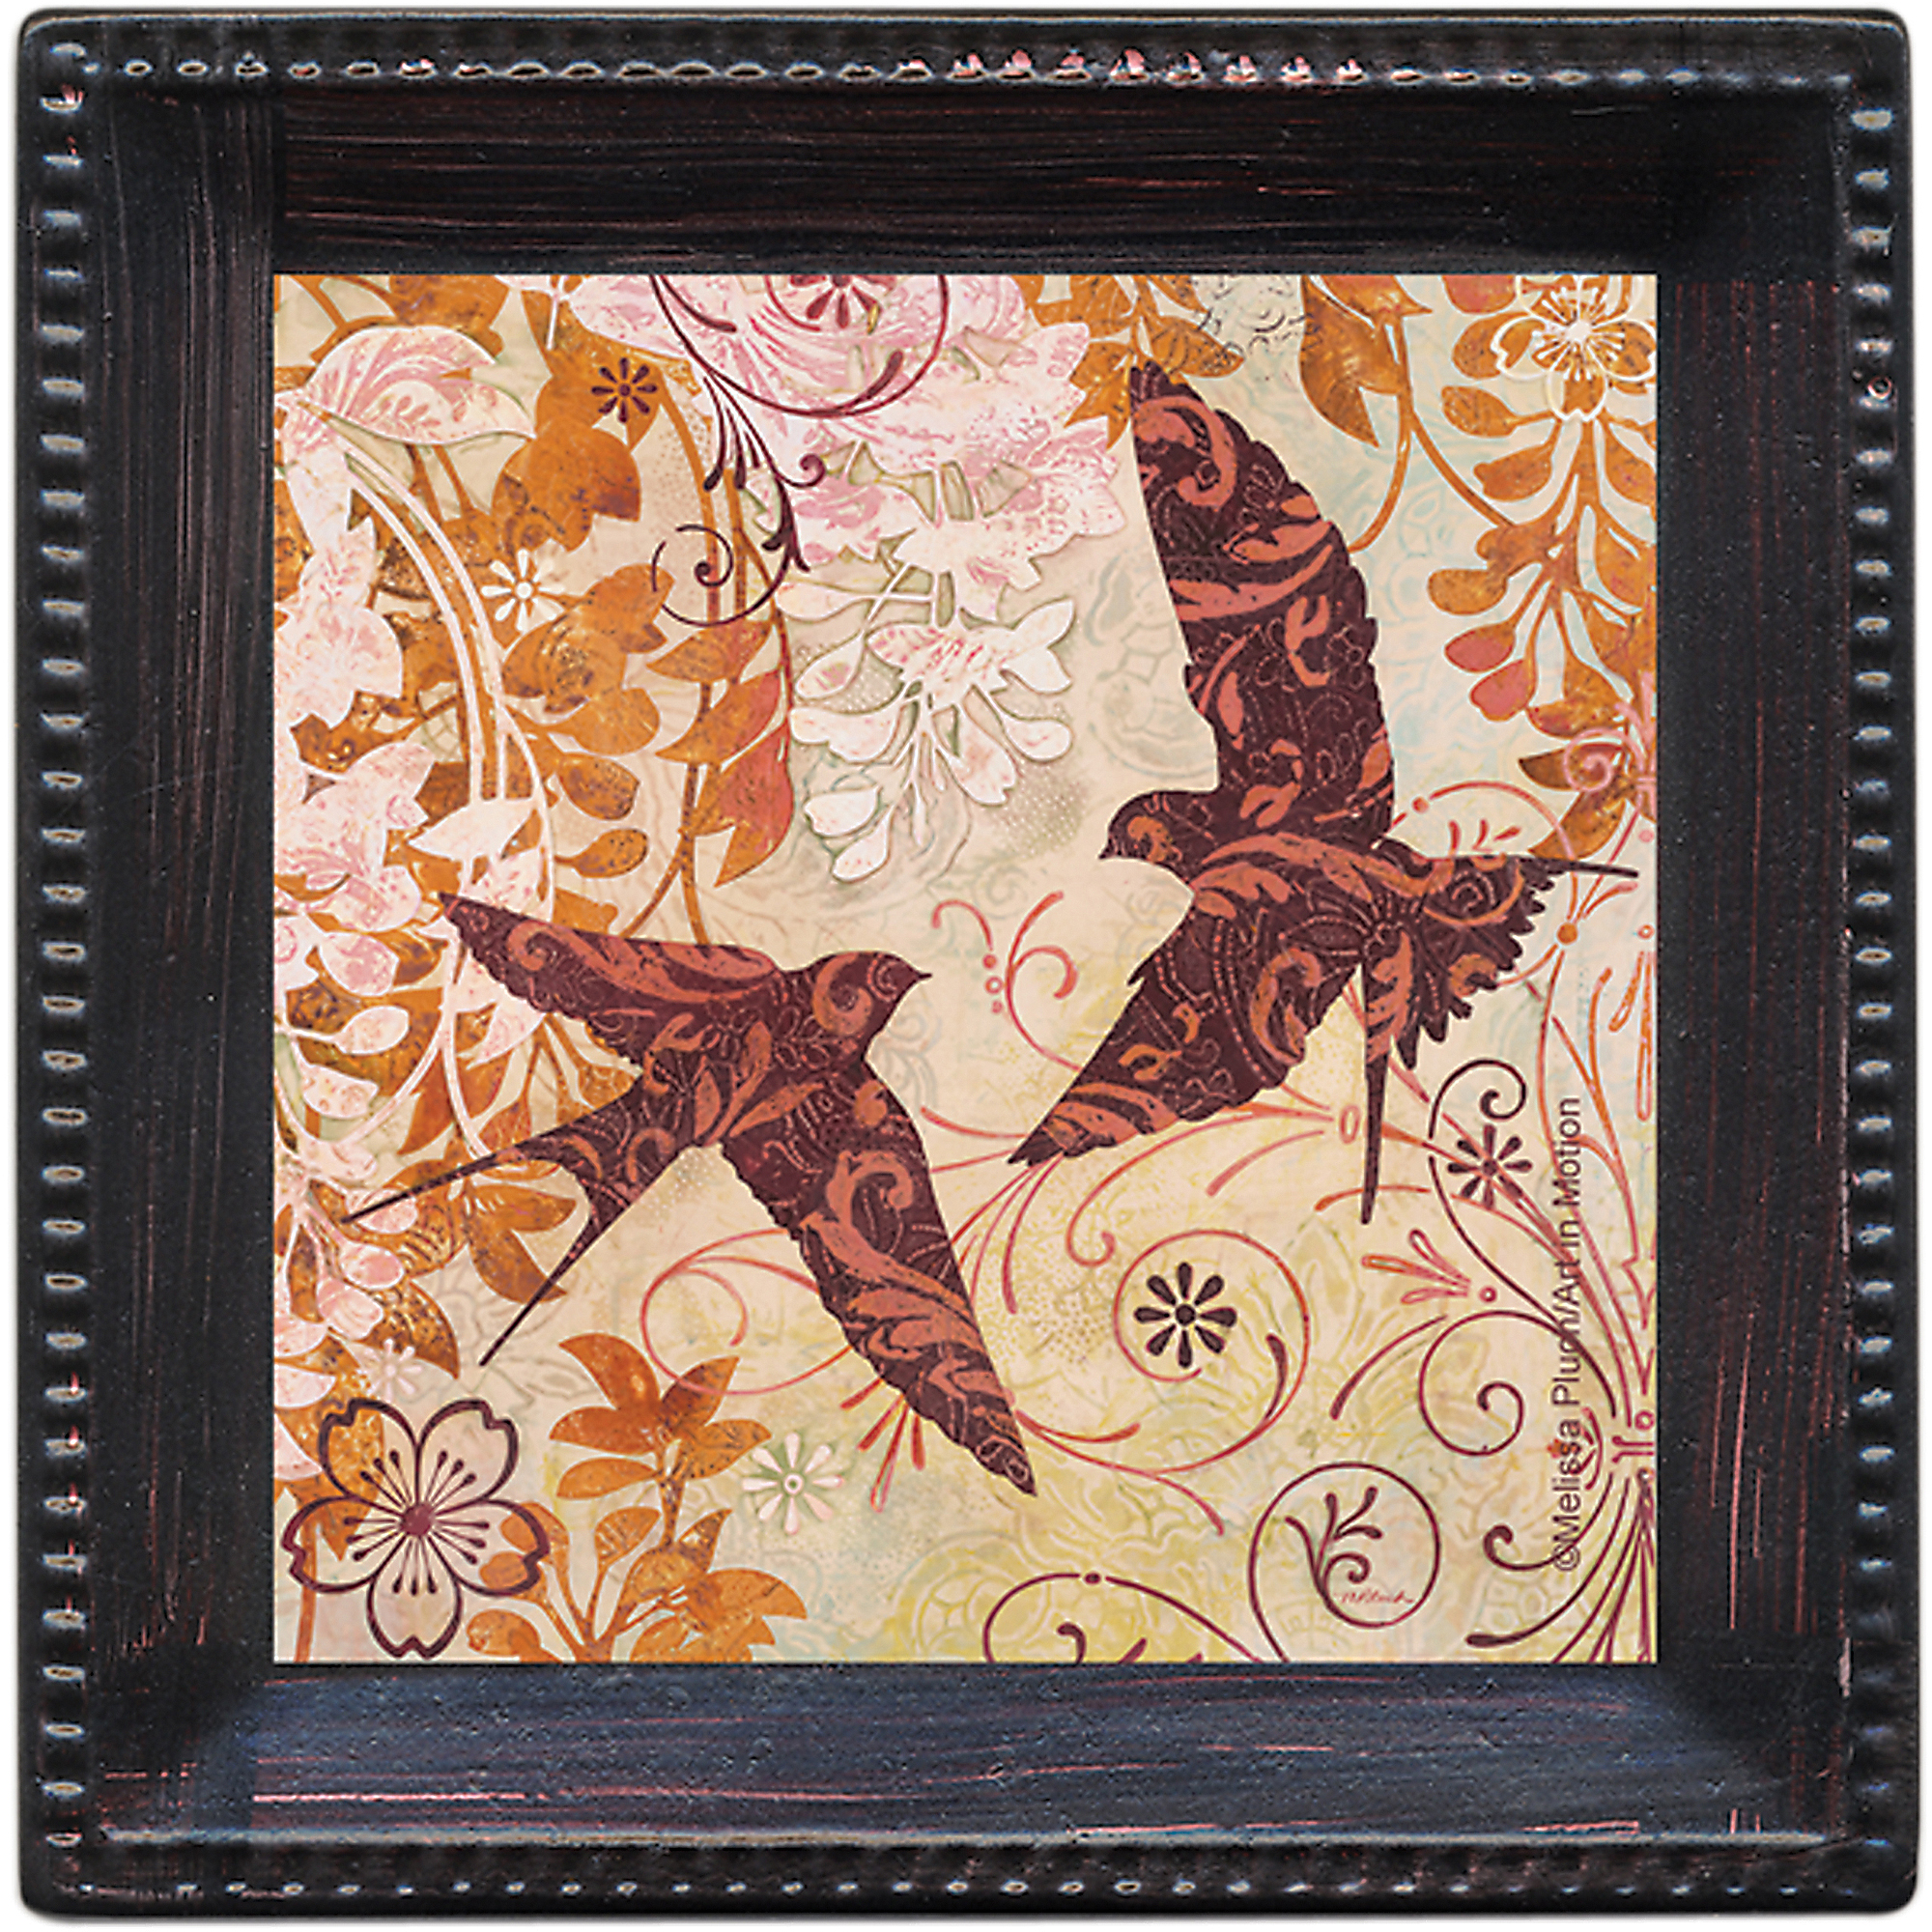 Thirstystone Ambiance Drink Coasters Set, Patterned Swallows, Bronze